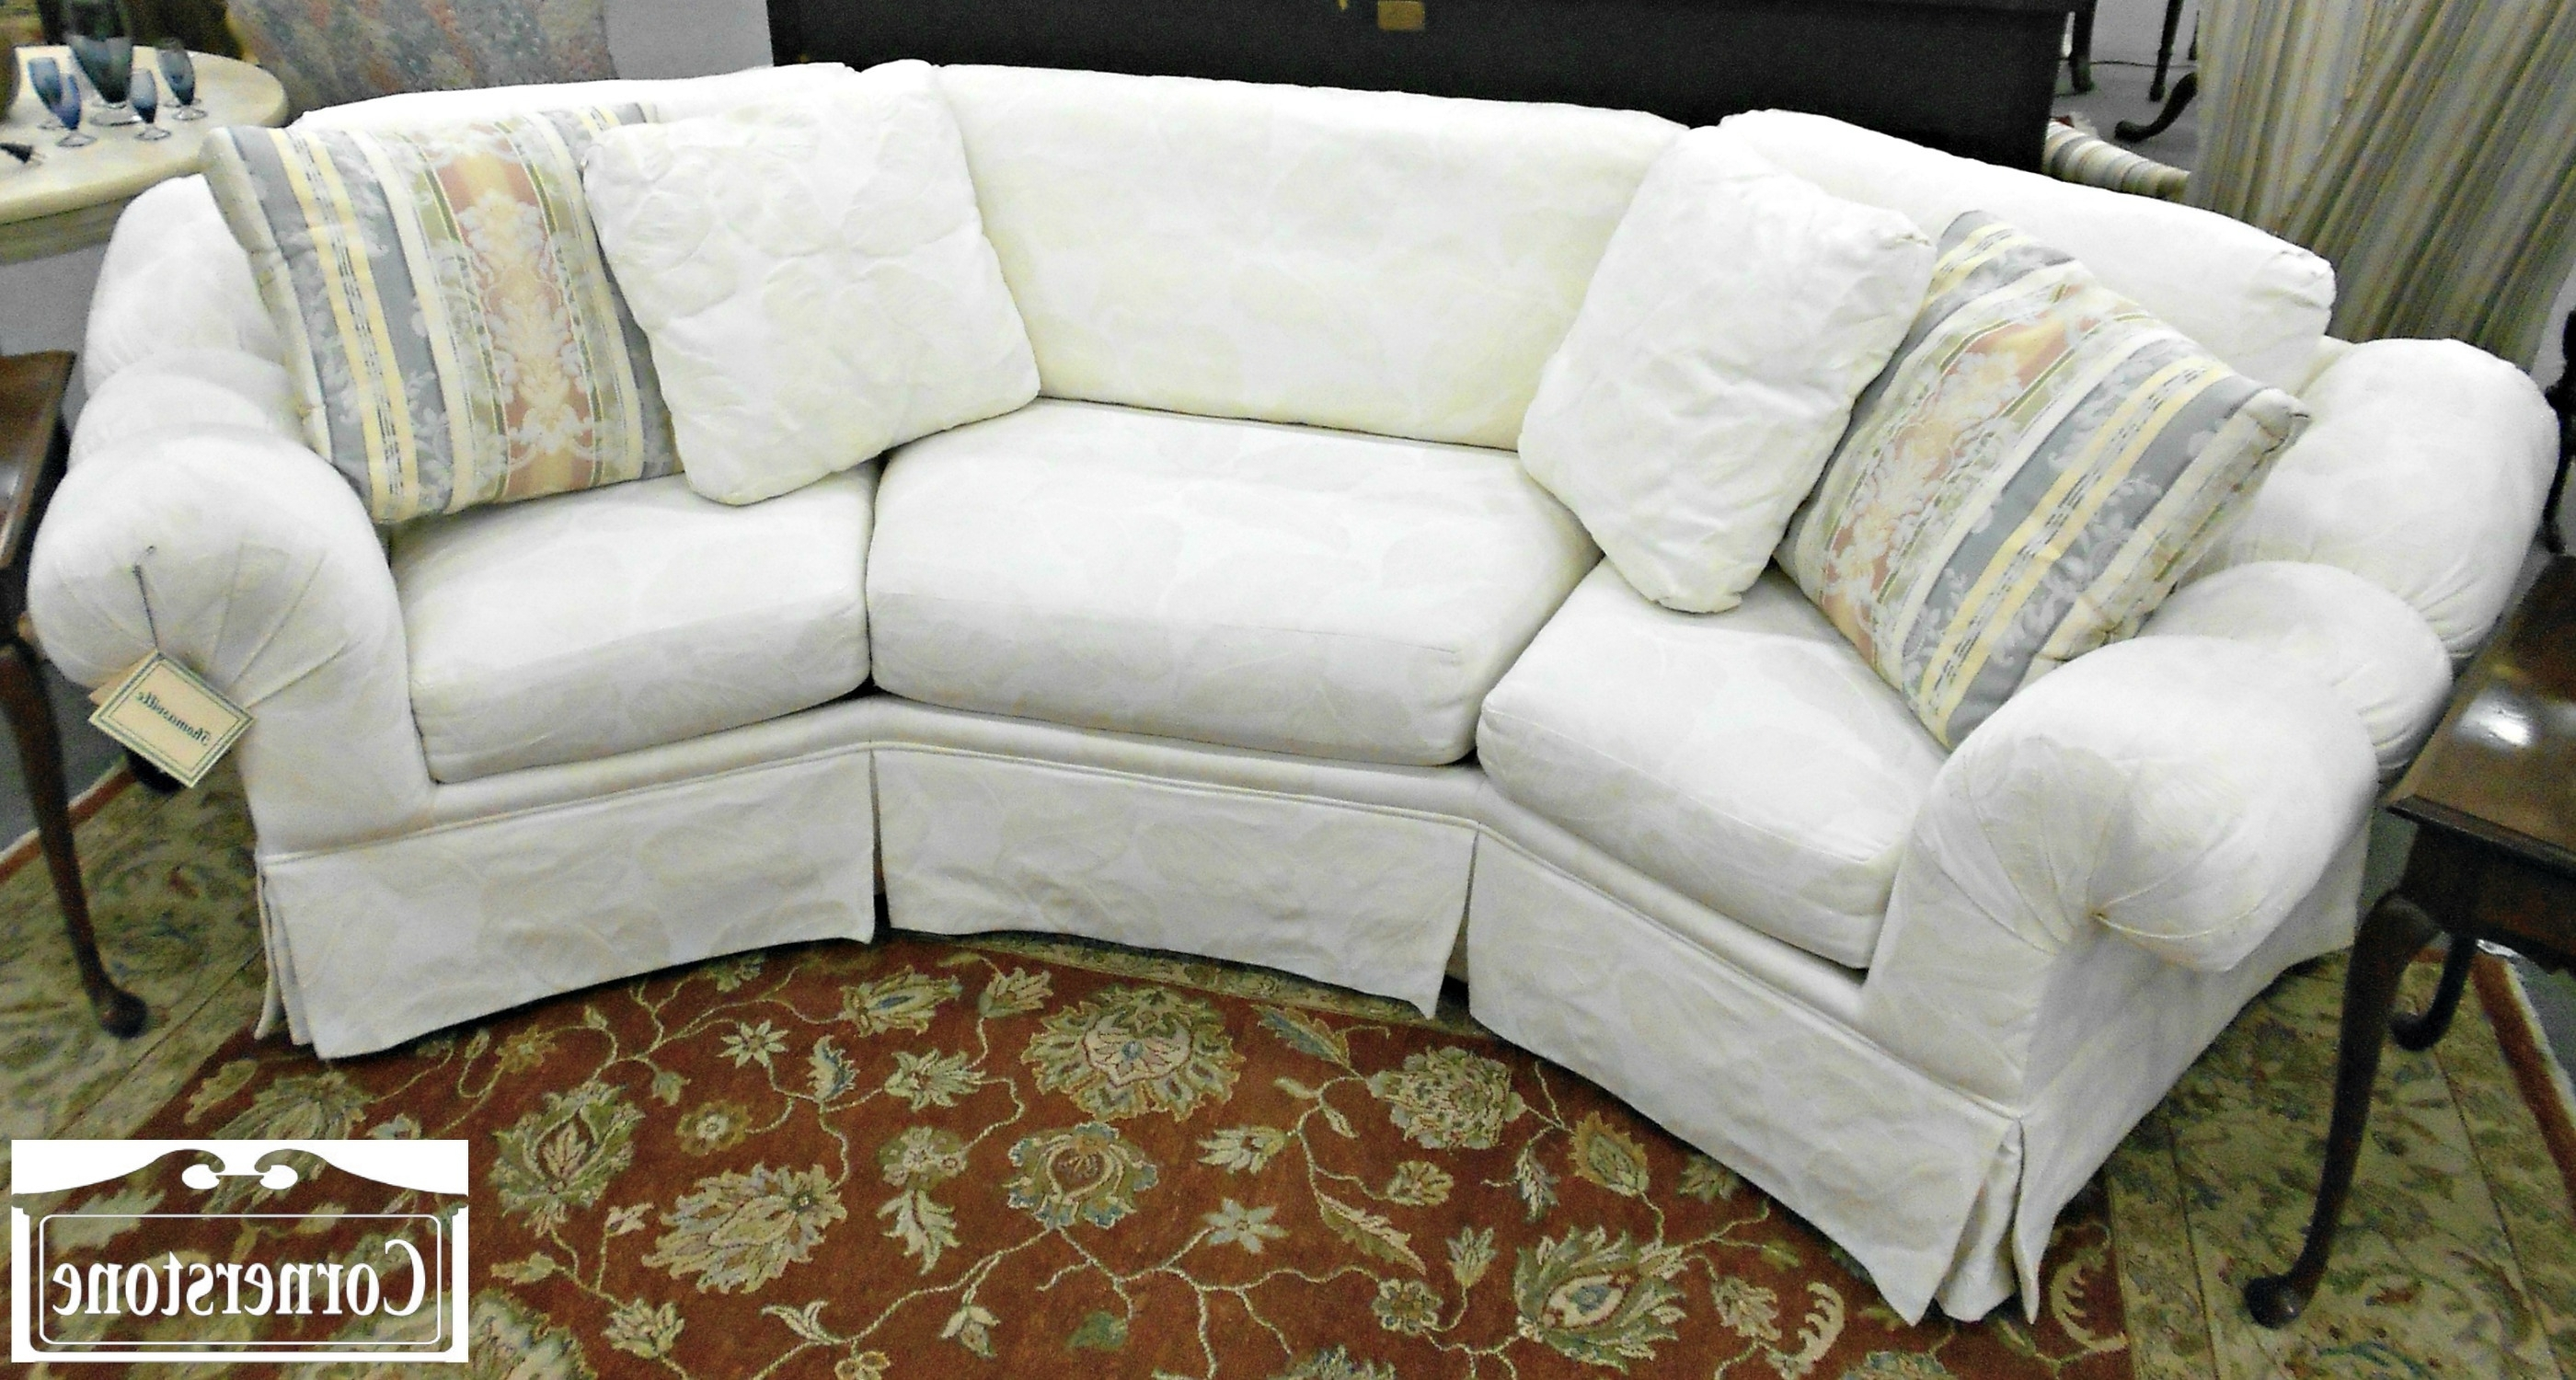 Deep Pertaining To Most Recently Released Thomasville Sectional Sofas (Gallery 20 of 20)